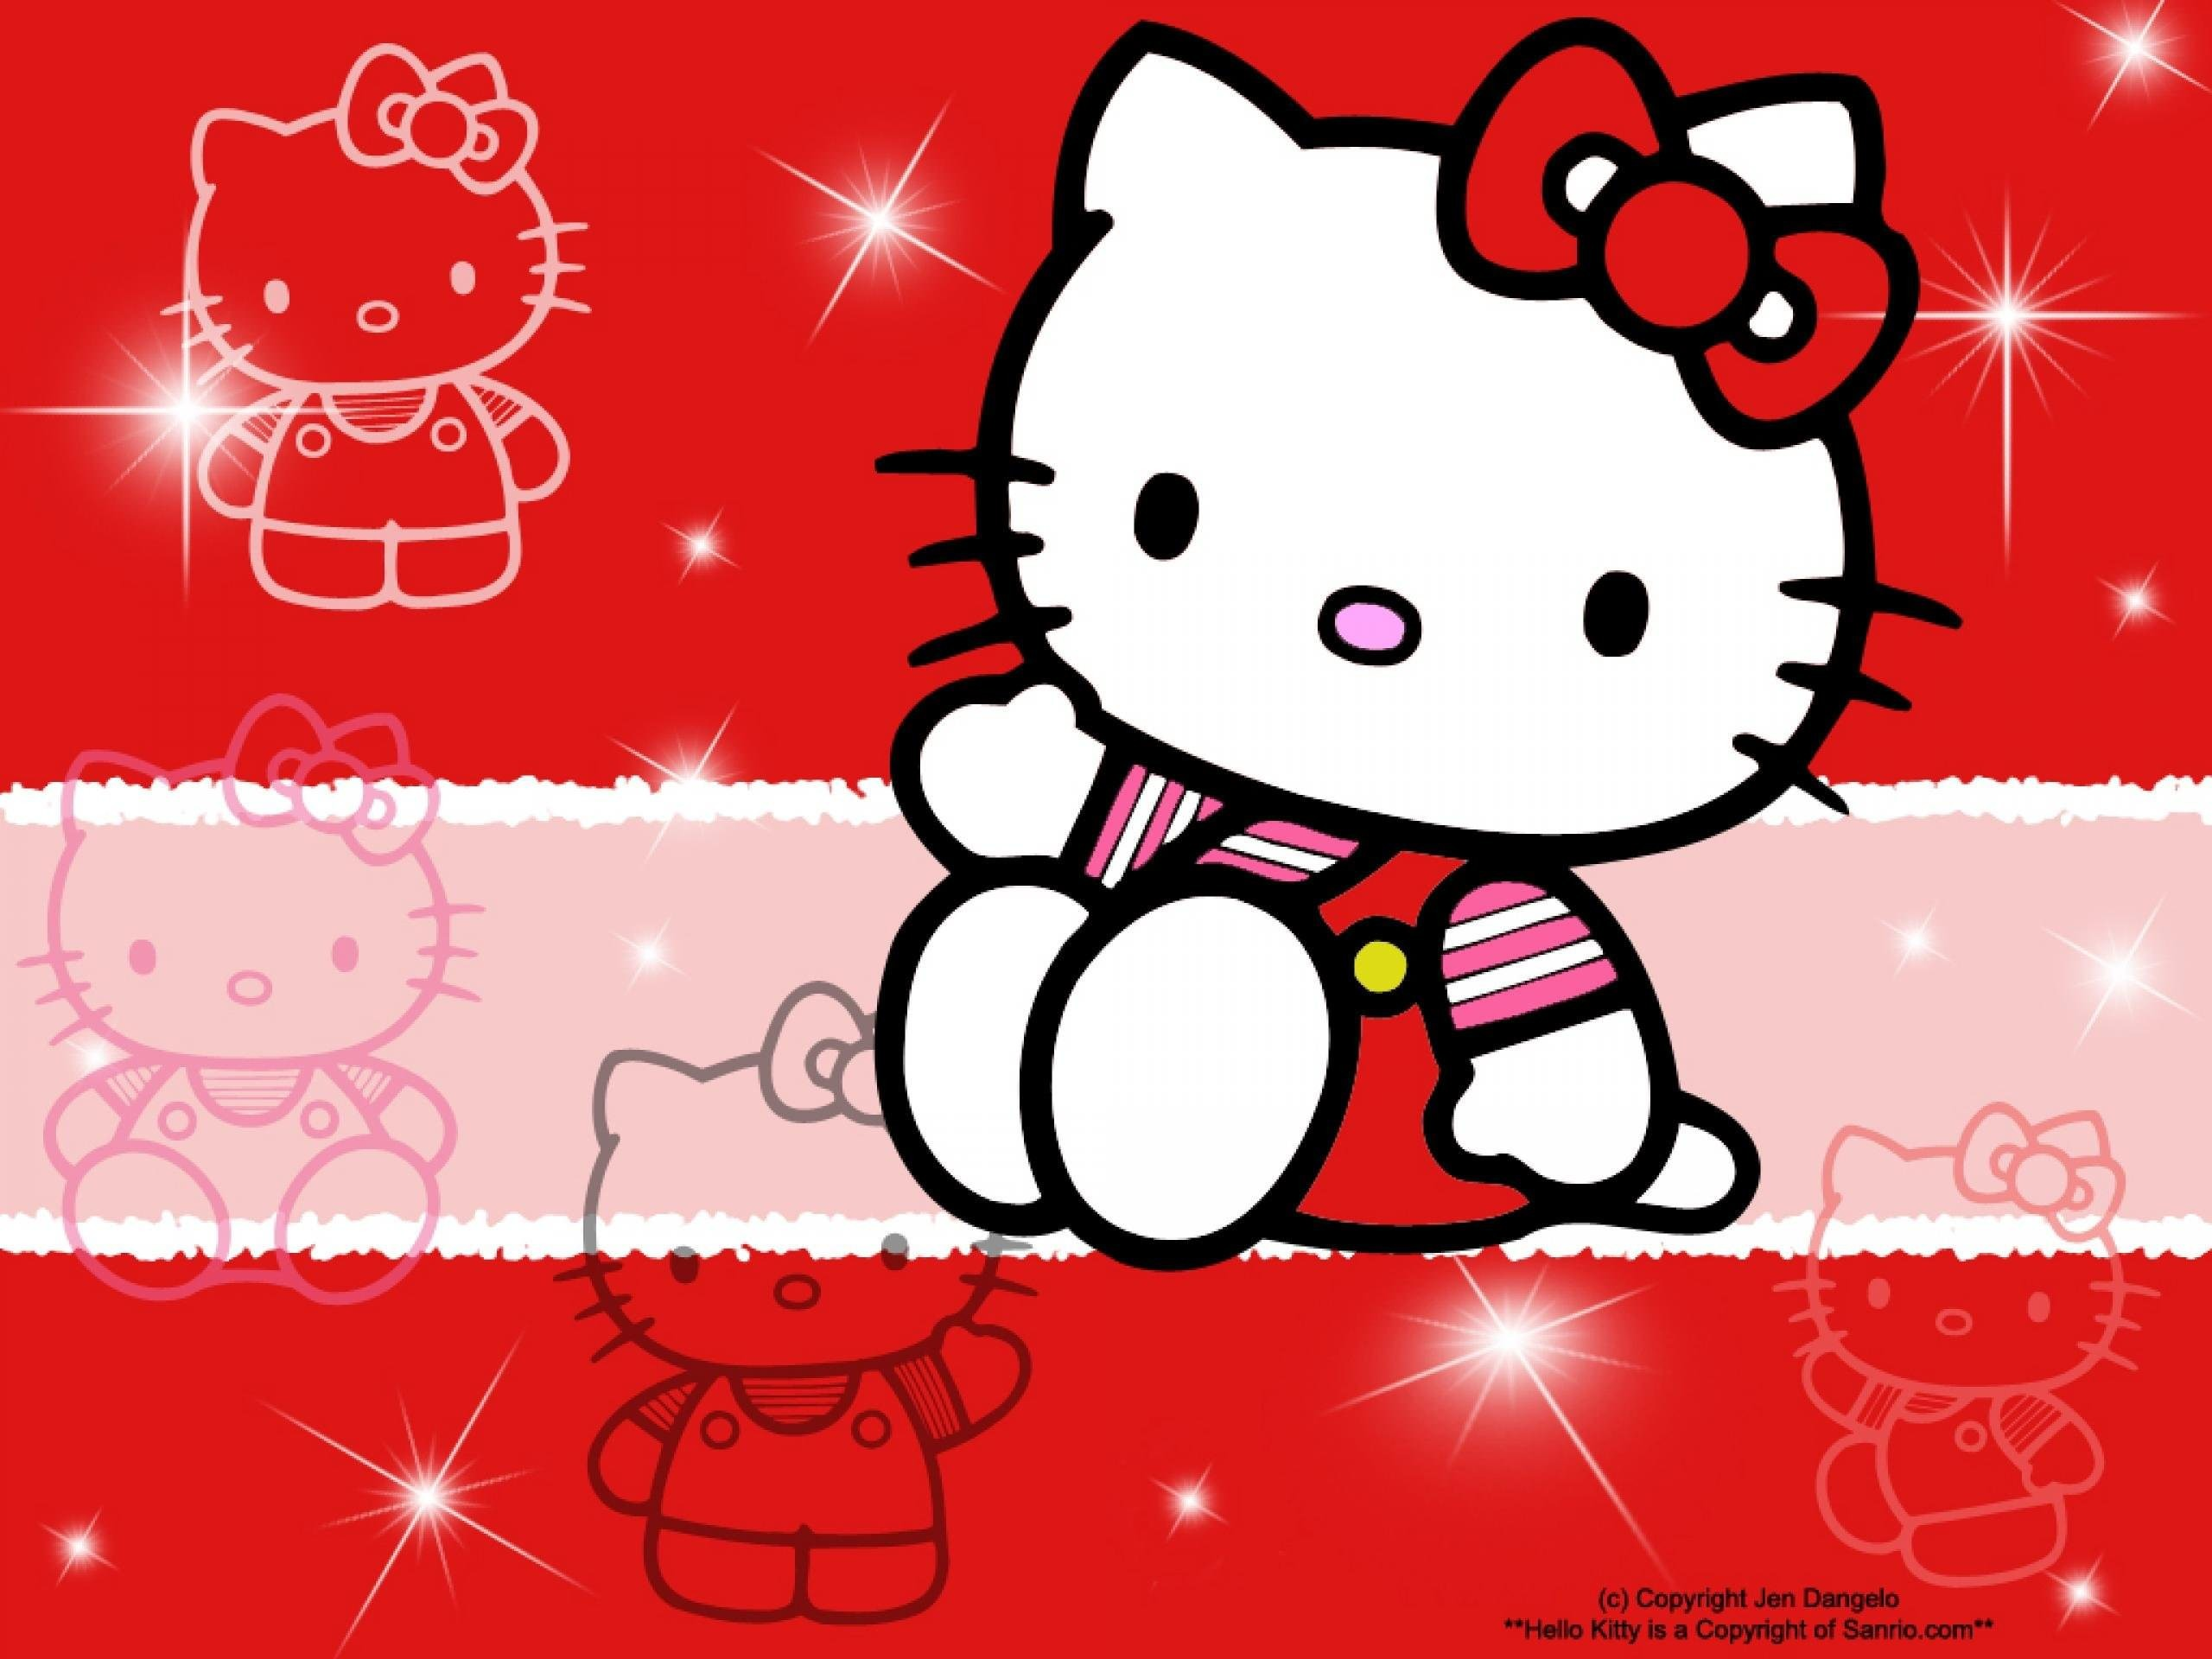 2560x1920 1152x2048 iPhone Wall: HK tjn. Hello Kitty .